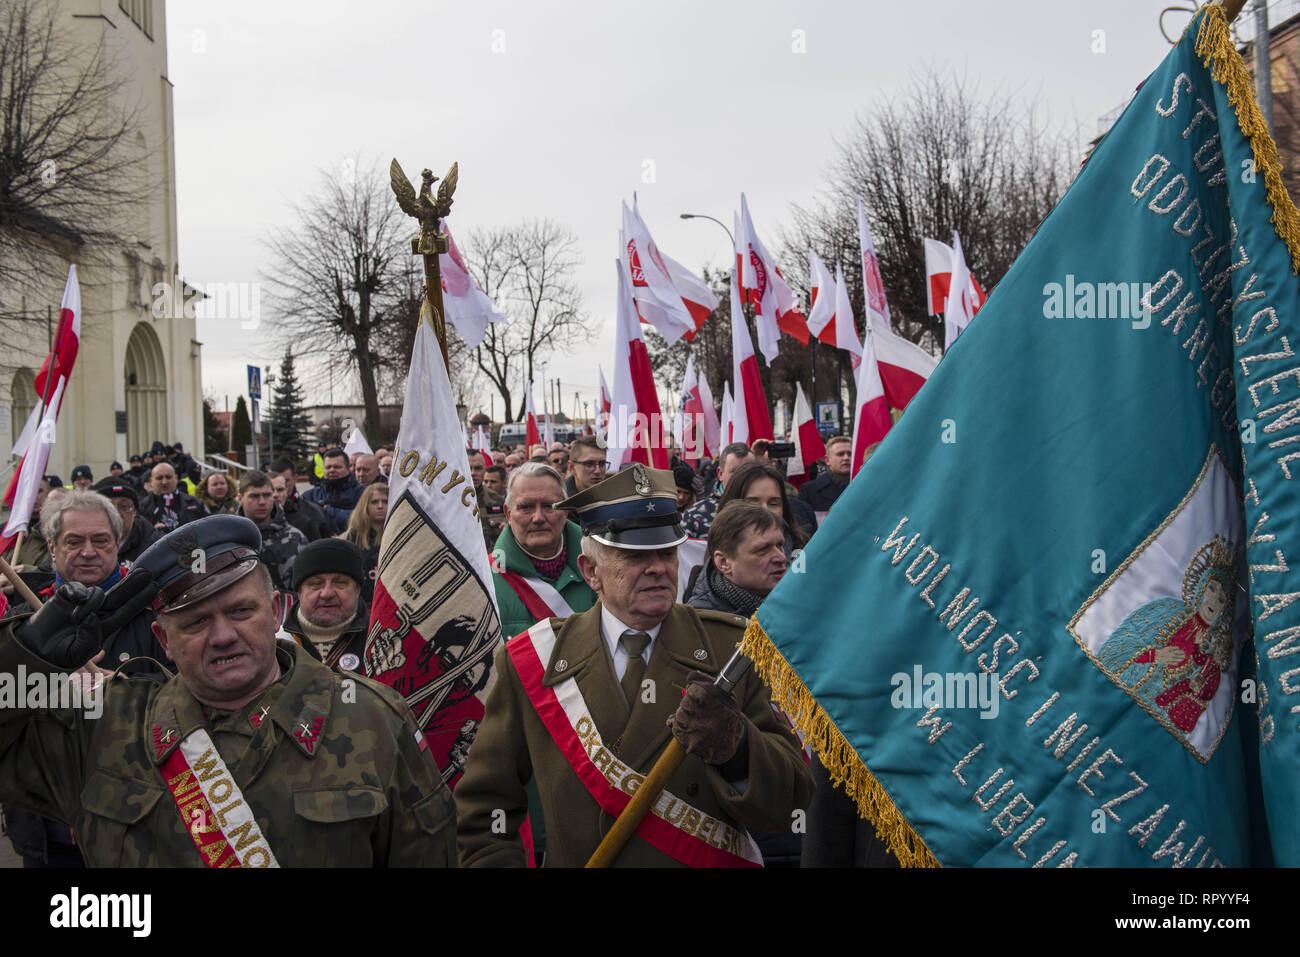 Hajnowka, Poldlaskie, Poland. 23rd Feb, 2019. Nationalists seen singing the Polish anthem during the march.Polish nationalists organized a commemorative march of the 'Cursed Soldiers'' in the city of Hajnowka next to the Belarusian border. The Cursed Soldiers also known as the Doomed Soldiers were anti-communist resistant fighters after WWII, however they were also famous of committing crimes against civilians, mostly ethnic Belarusians. Credit: Attila Husejnow/SOPA Images/ZUMA Wire/Alamy Live News - Stock Image